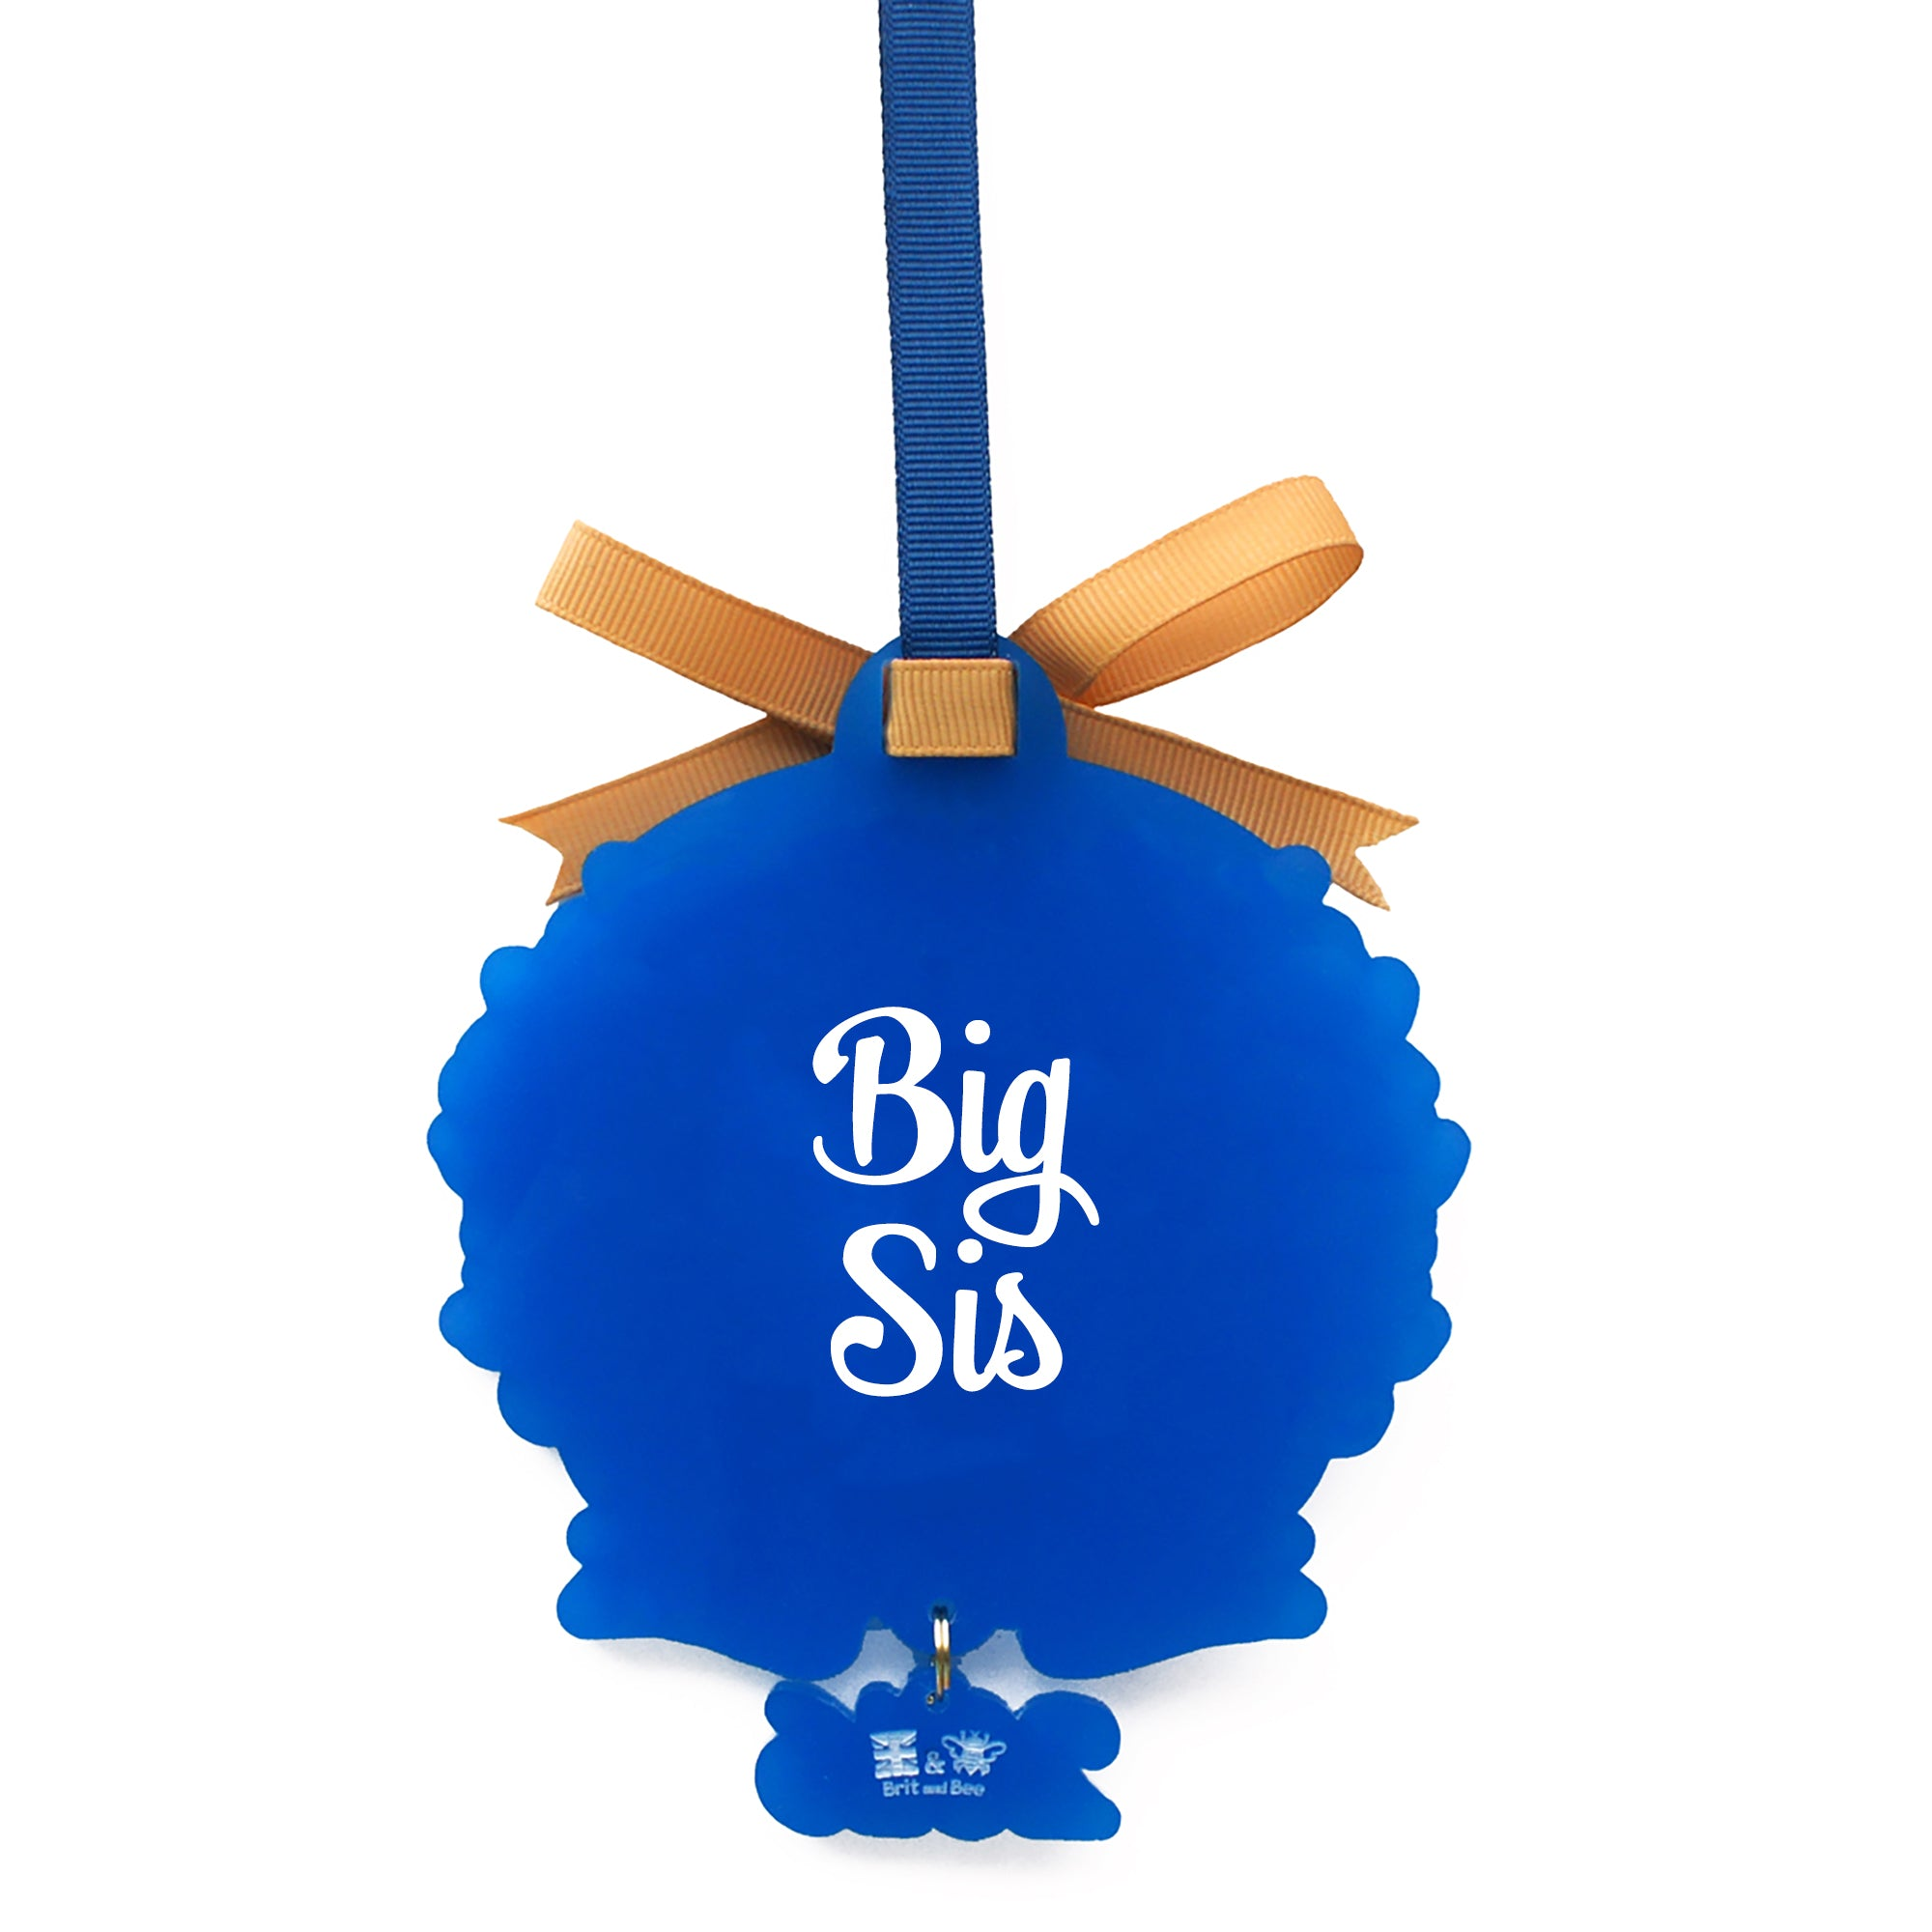 Delta Delta Delta Sorority Ornament | Brit and Bee